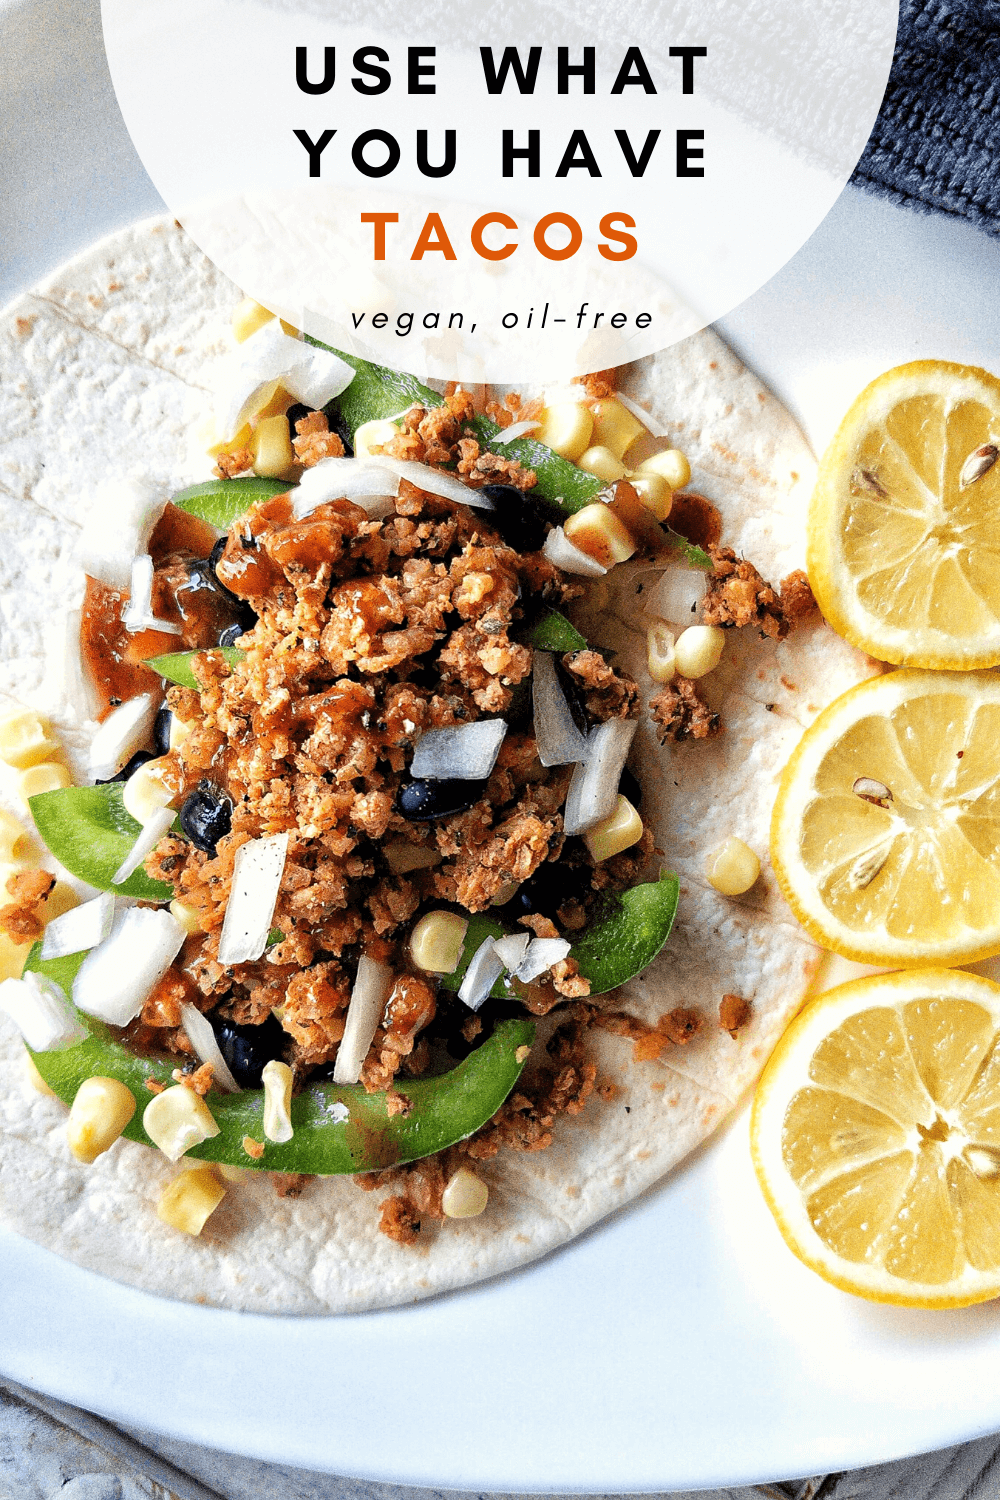 Pinnable image for Pinterest of veggie tacos